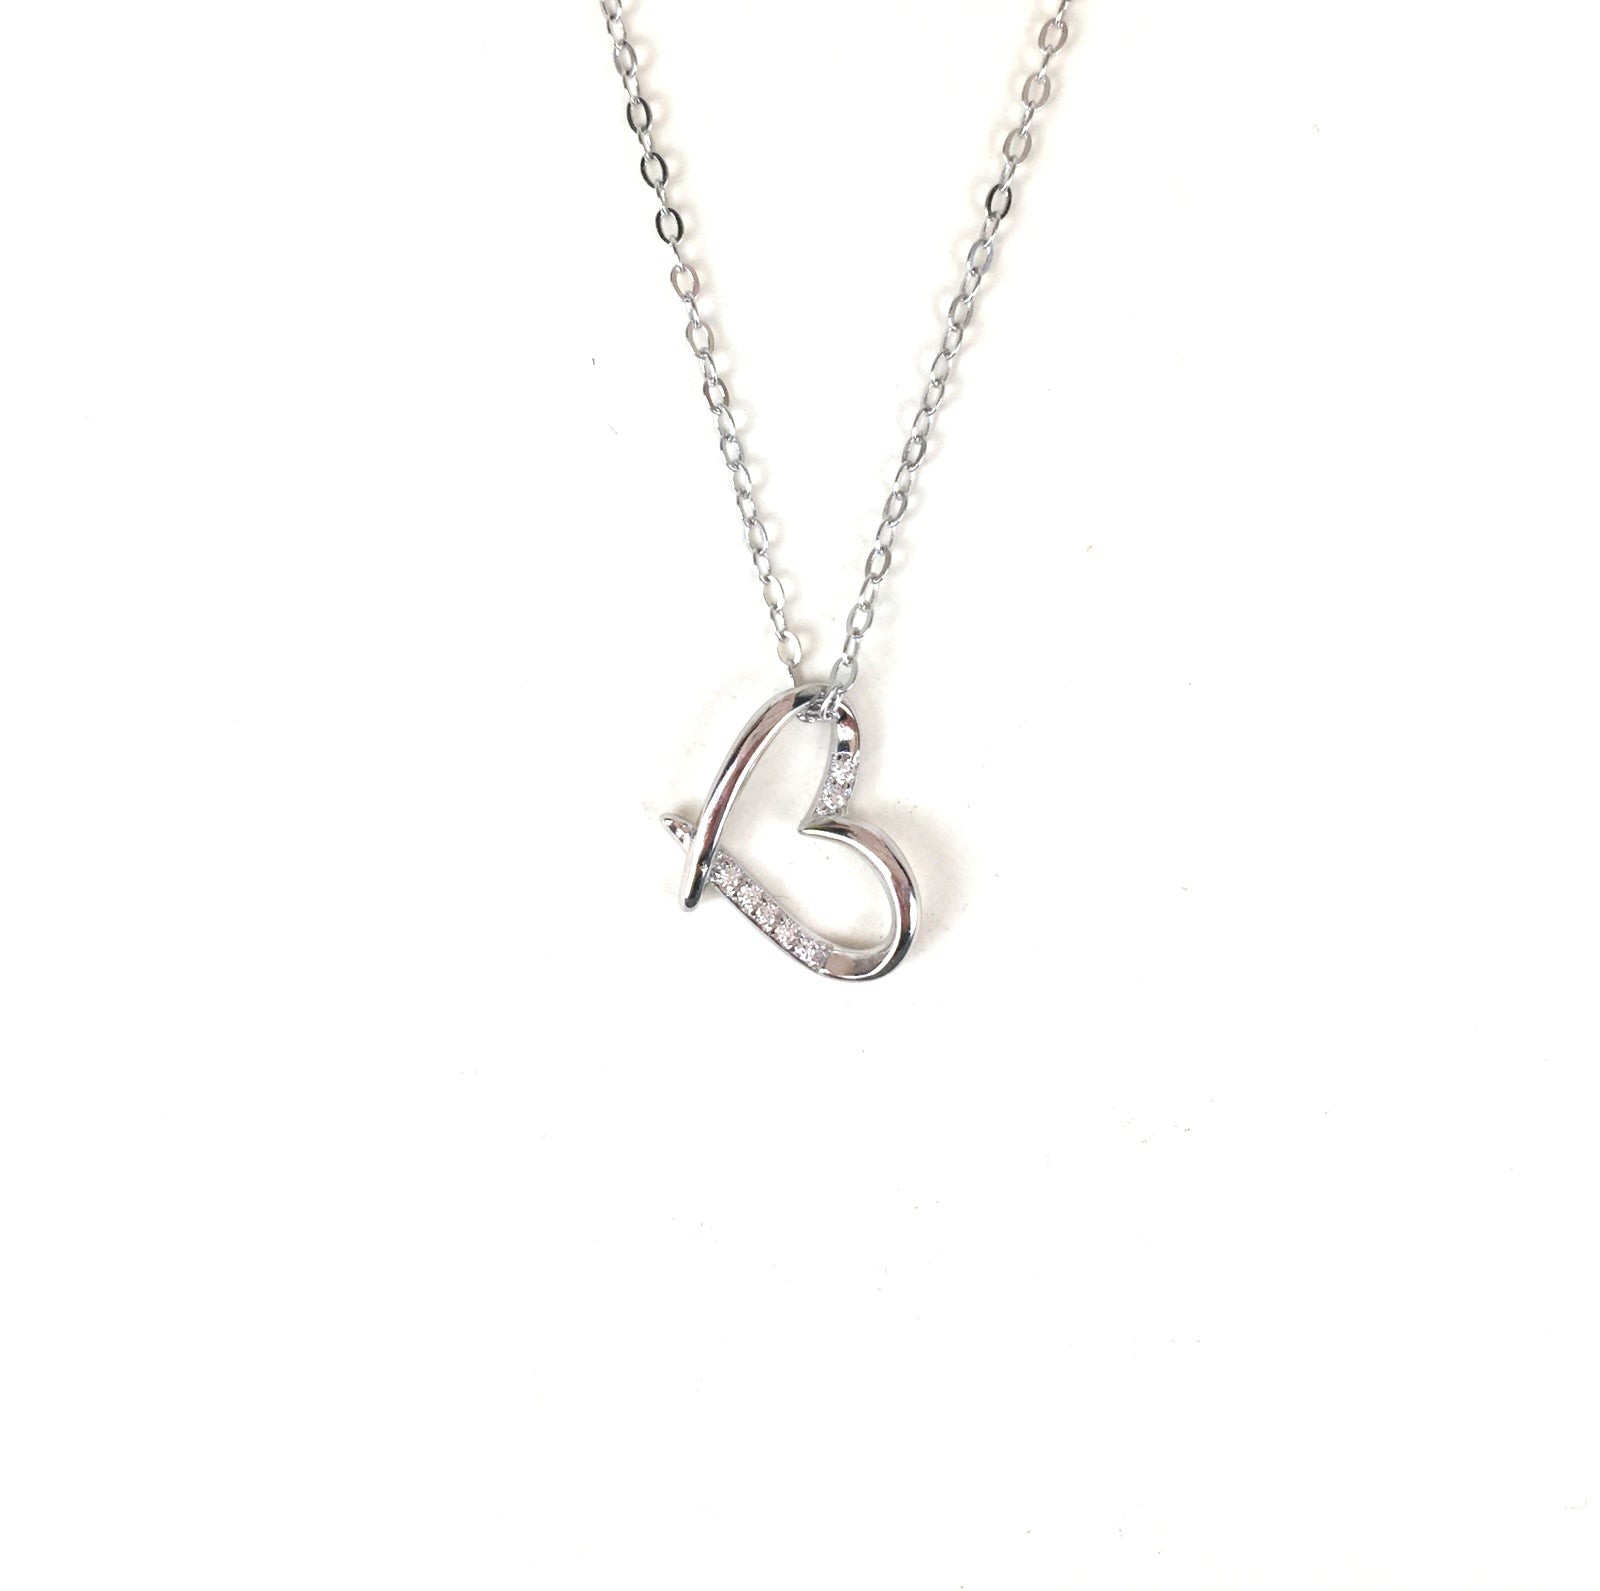 SIMPLE HEART PAVE CZ STERLING SILVER NECKLACE